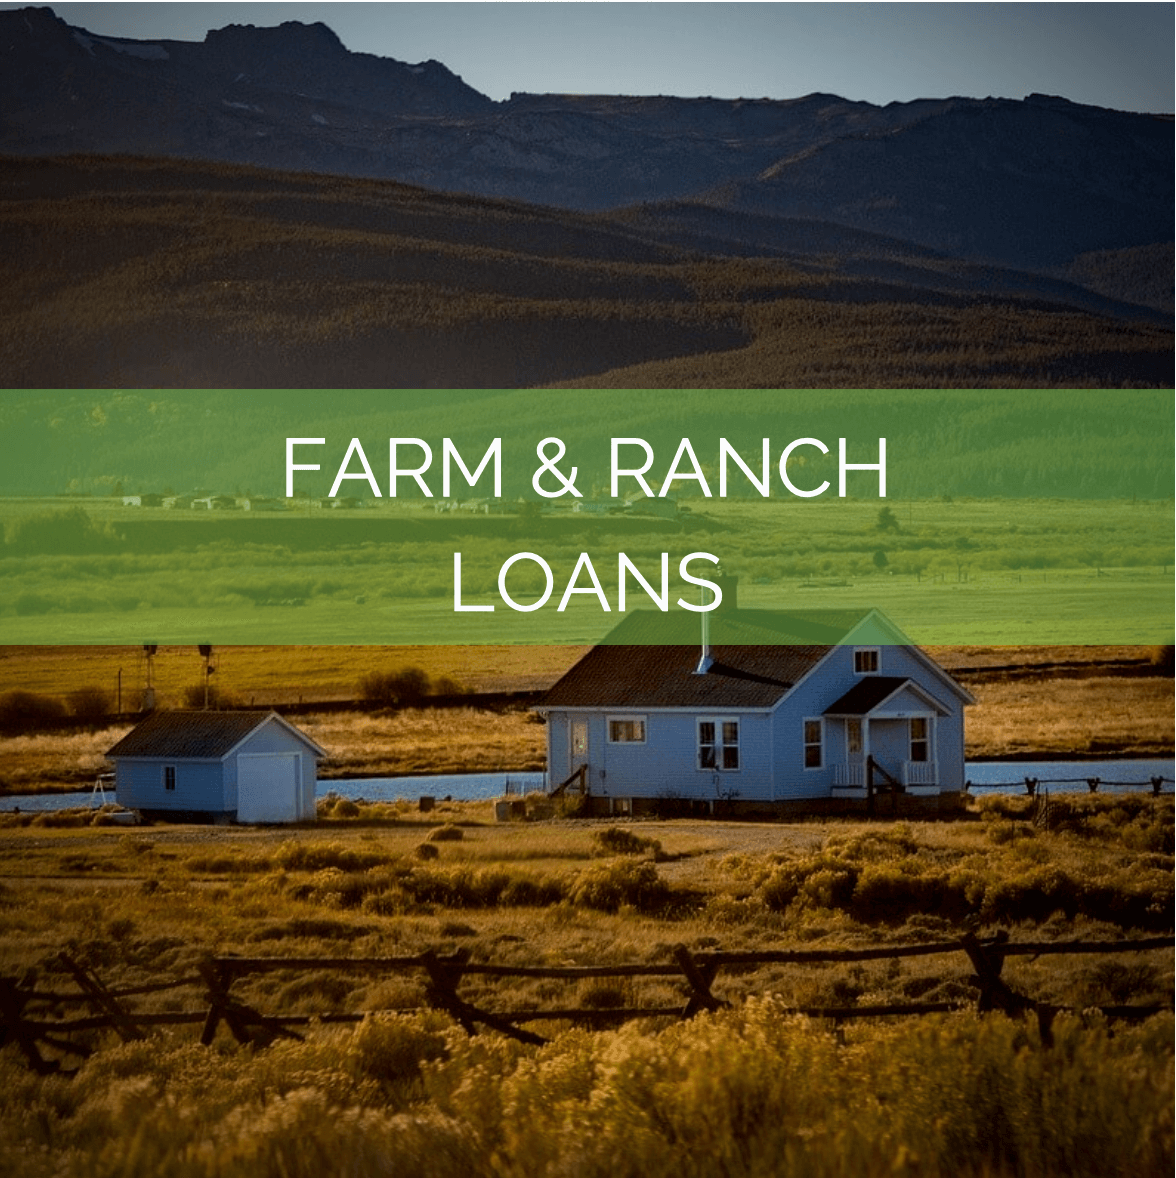 Farm and Ranch Loans Colorado